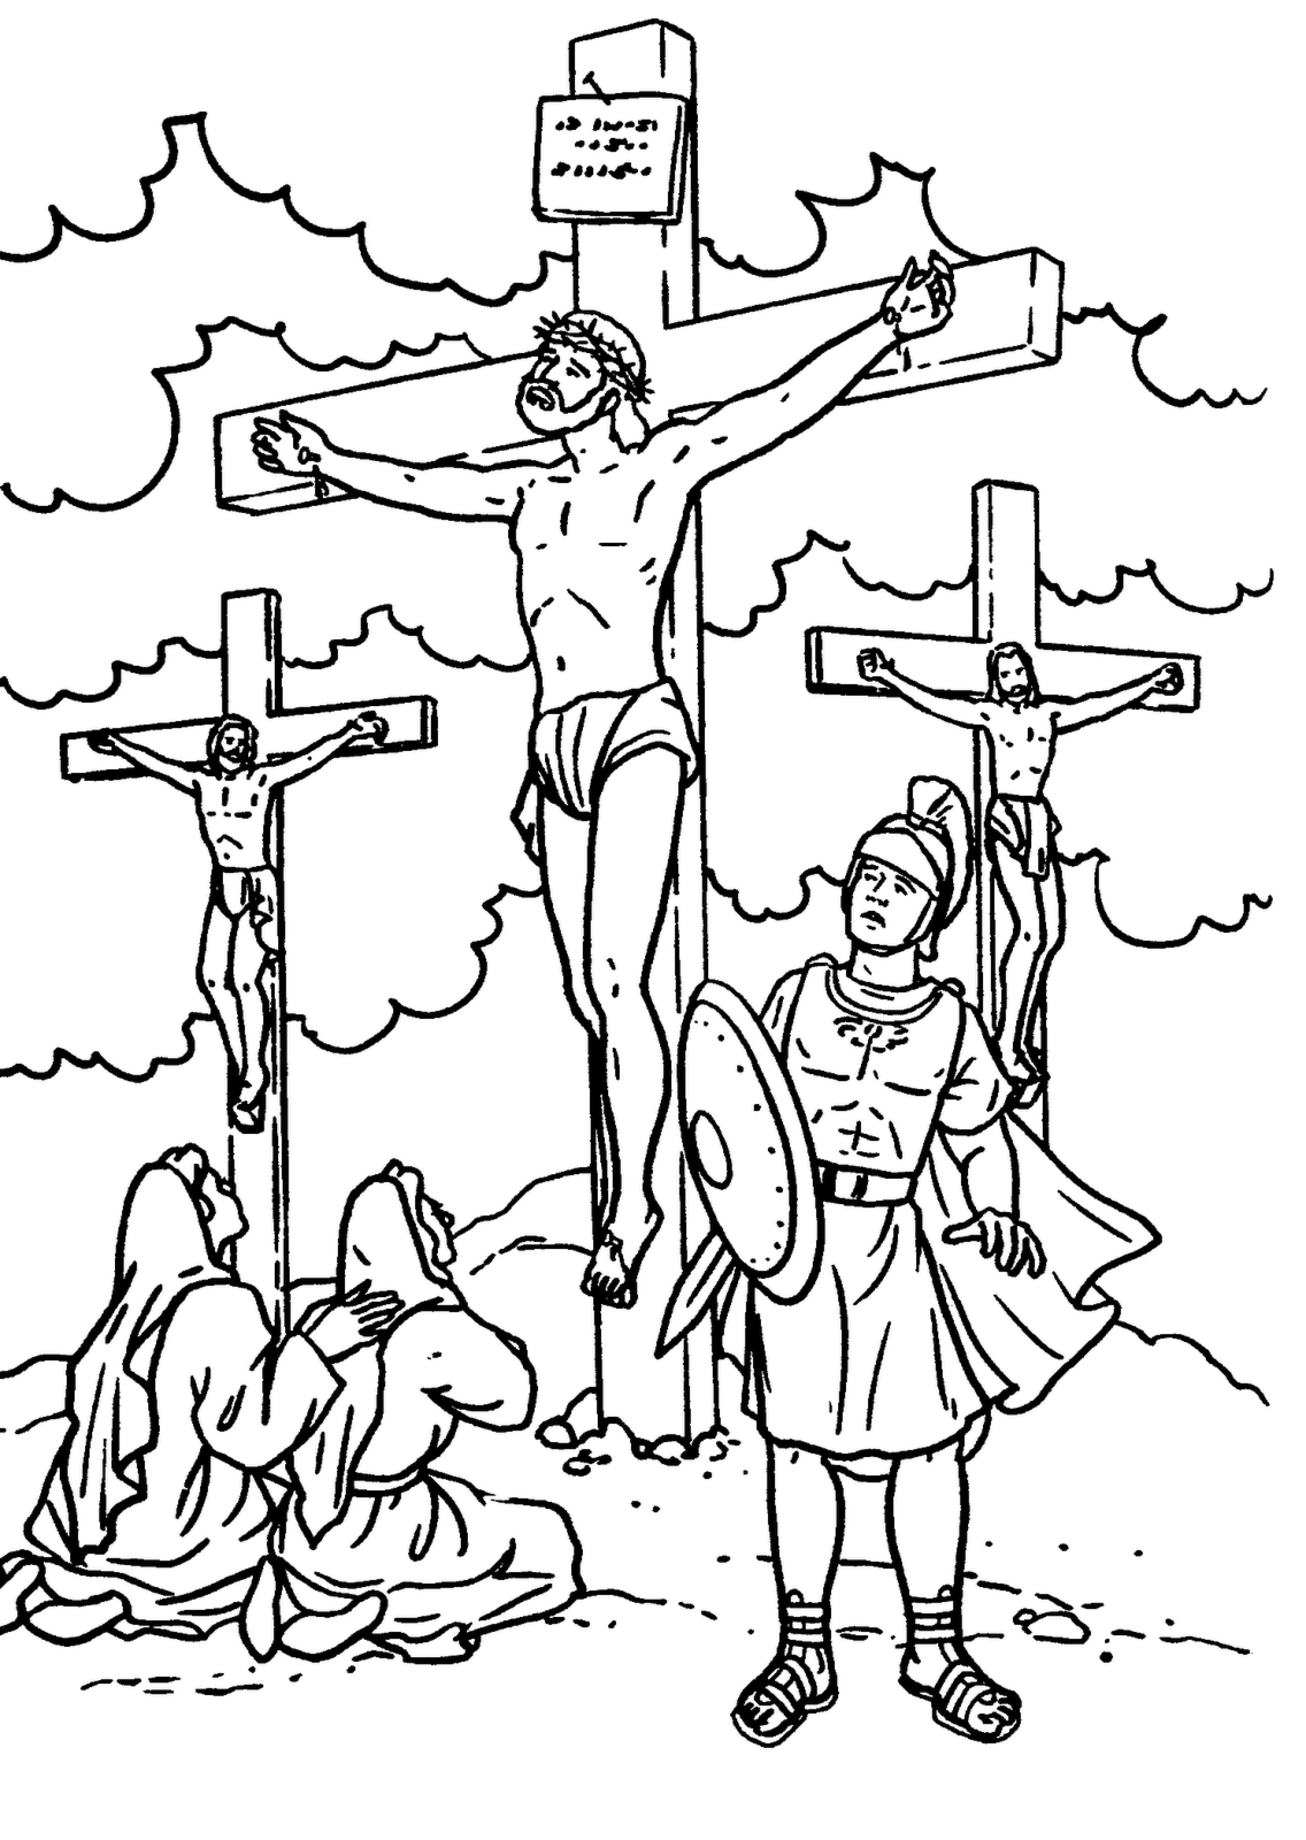 printable pictures of jesus on the cross the huddle coloring pages cross printable on the pictures jesus of